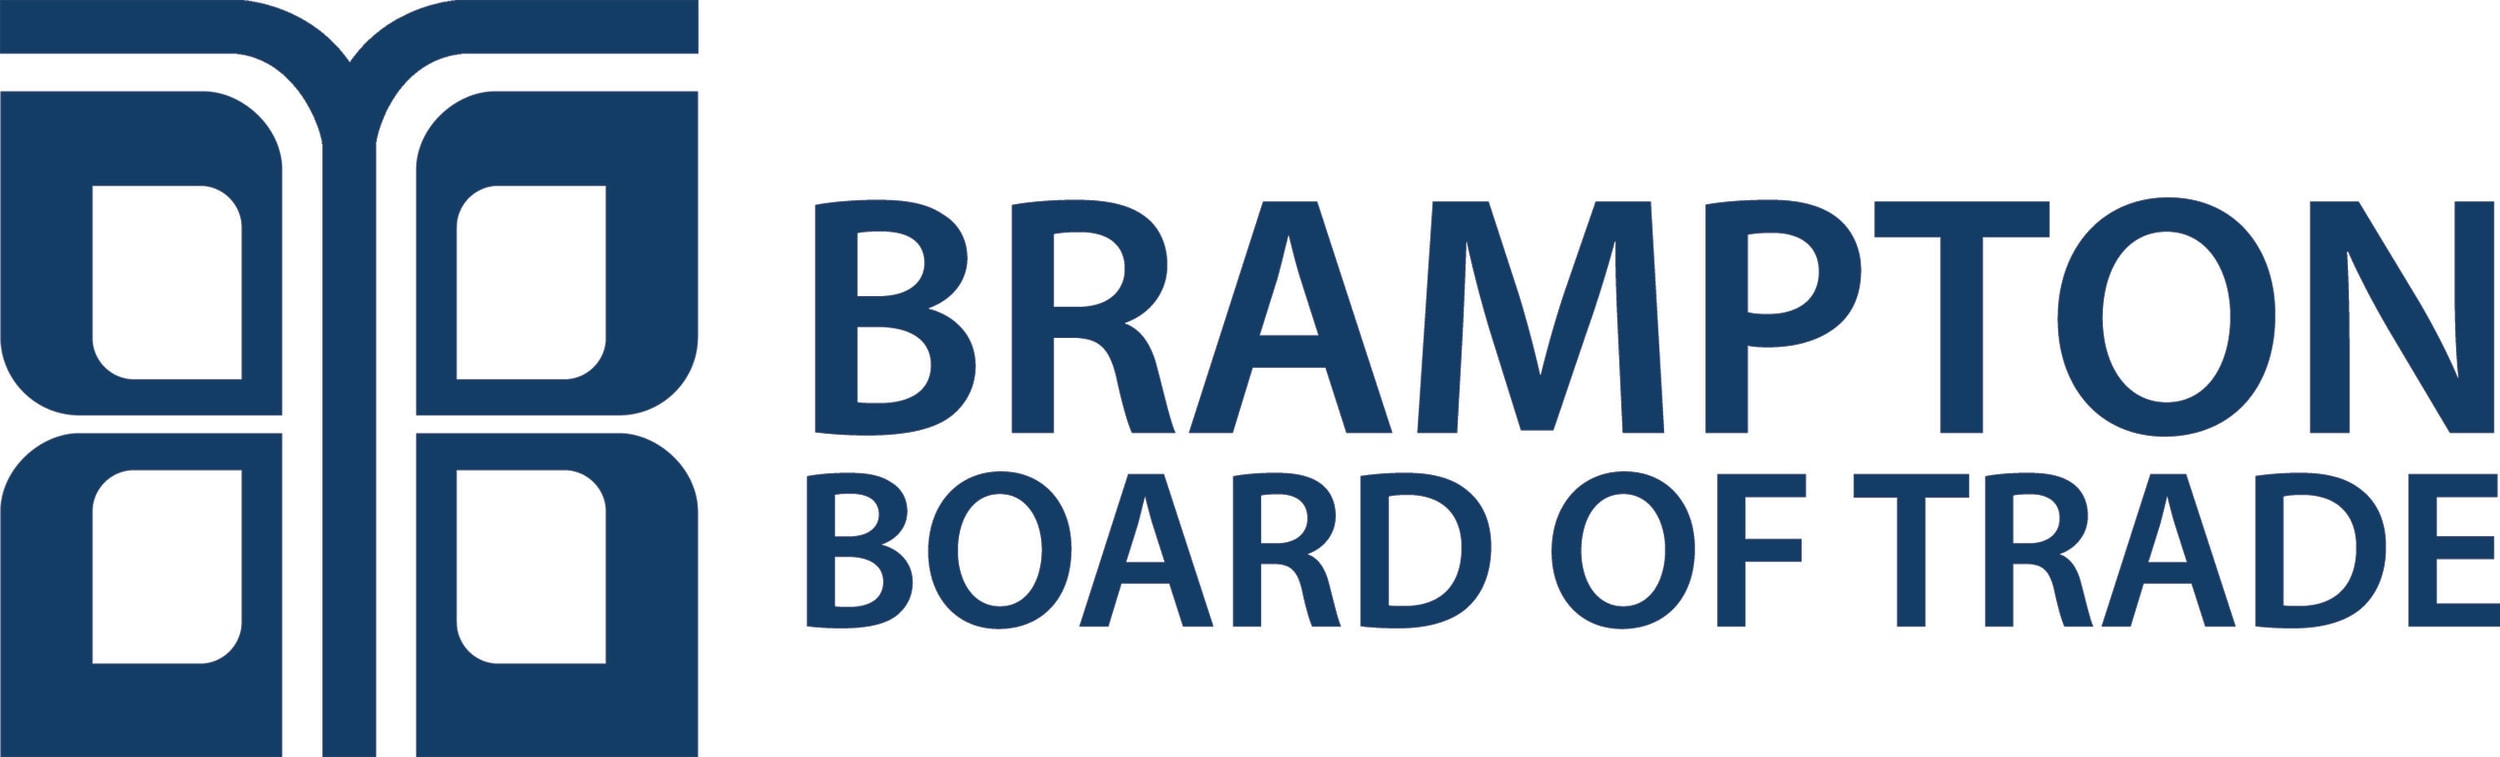 the Brampton Board of Trade